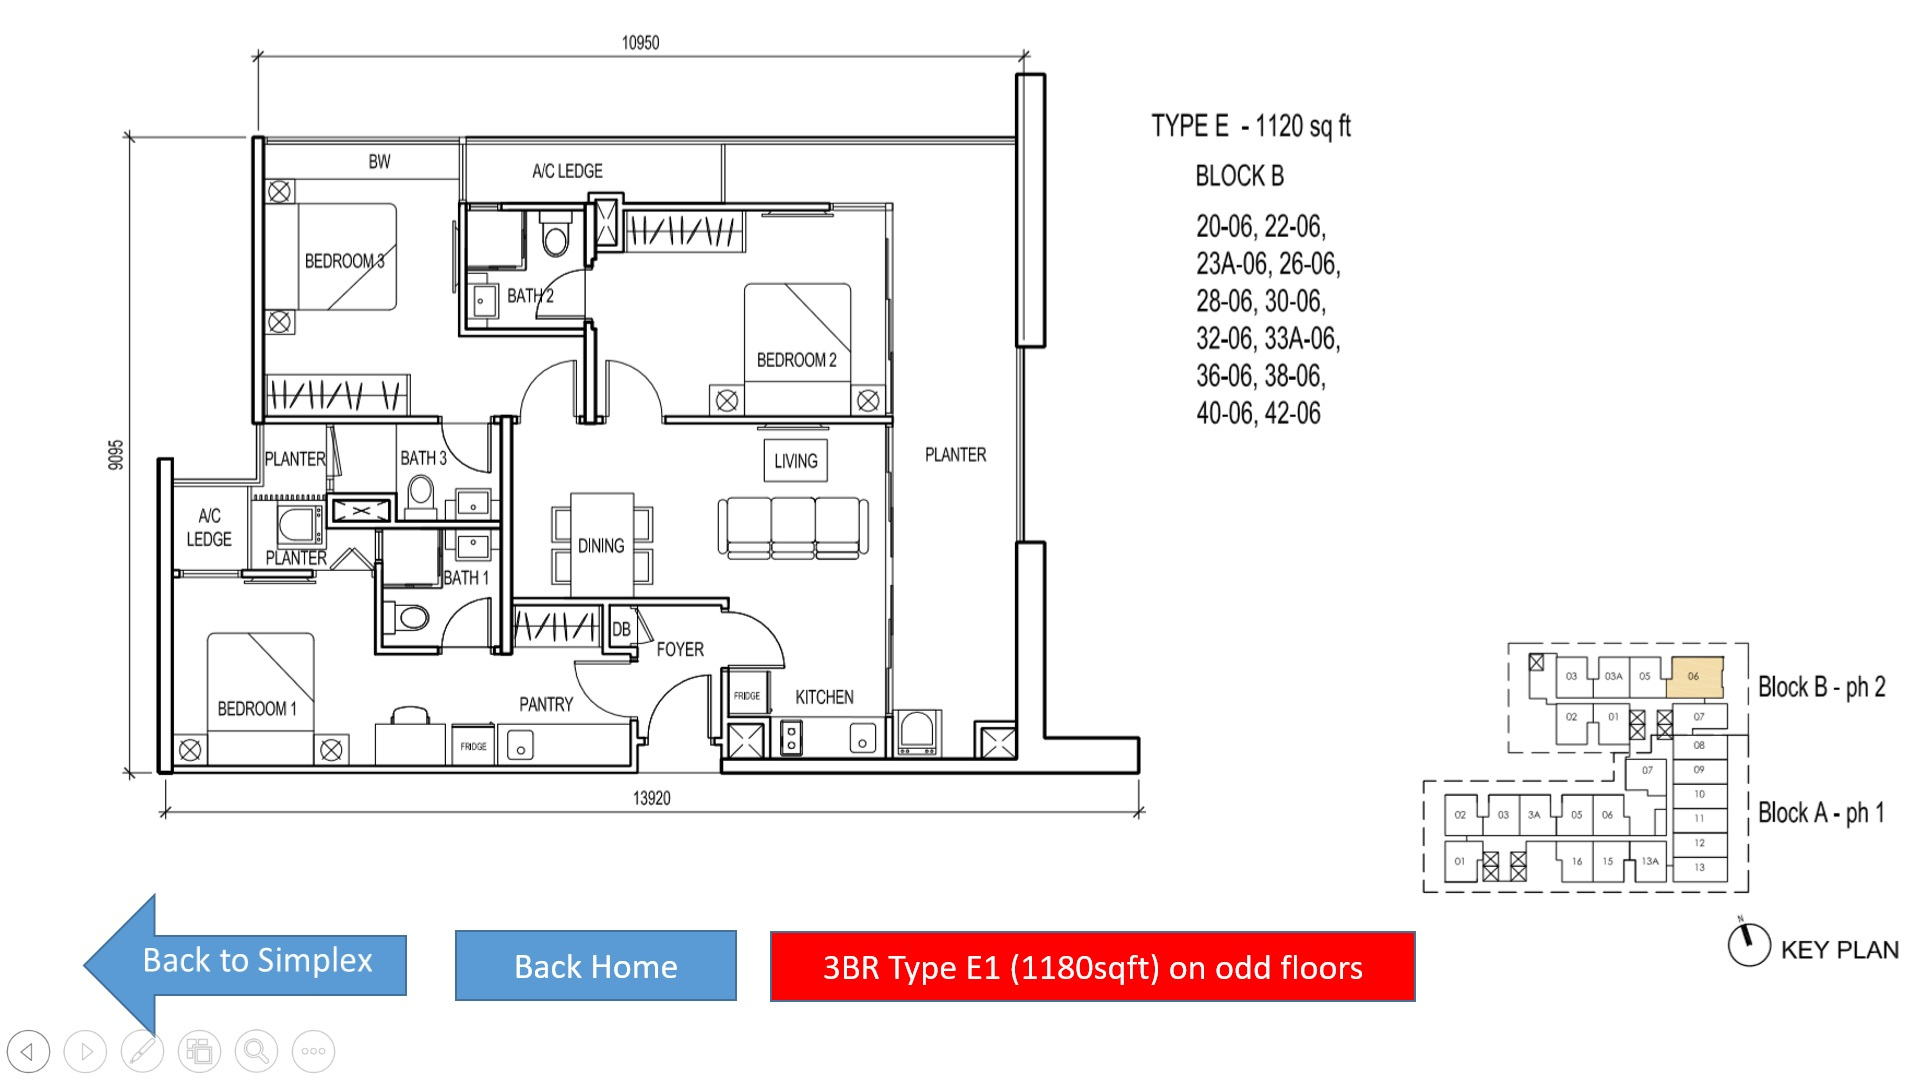 The Luxe KL Floor Plan 3BR Simplex - Type E (1120sqft)